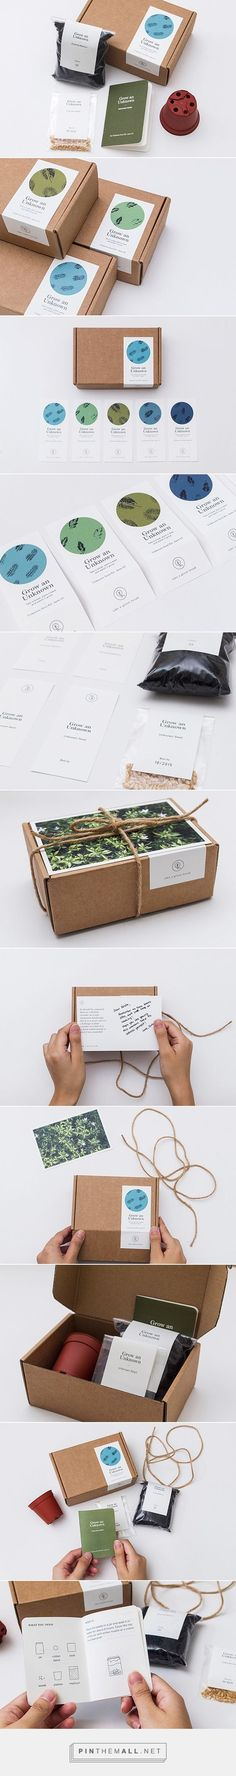 Make your business mail stand out with branded mailer packaging packaging Kraft Packaging, Seed Packaging, Food Packaging Design, Paper Packaging, Packaging Design Inspiration, Branding Design, Food Box Packaging, Web Foto, Box Design